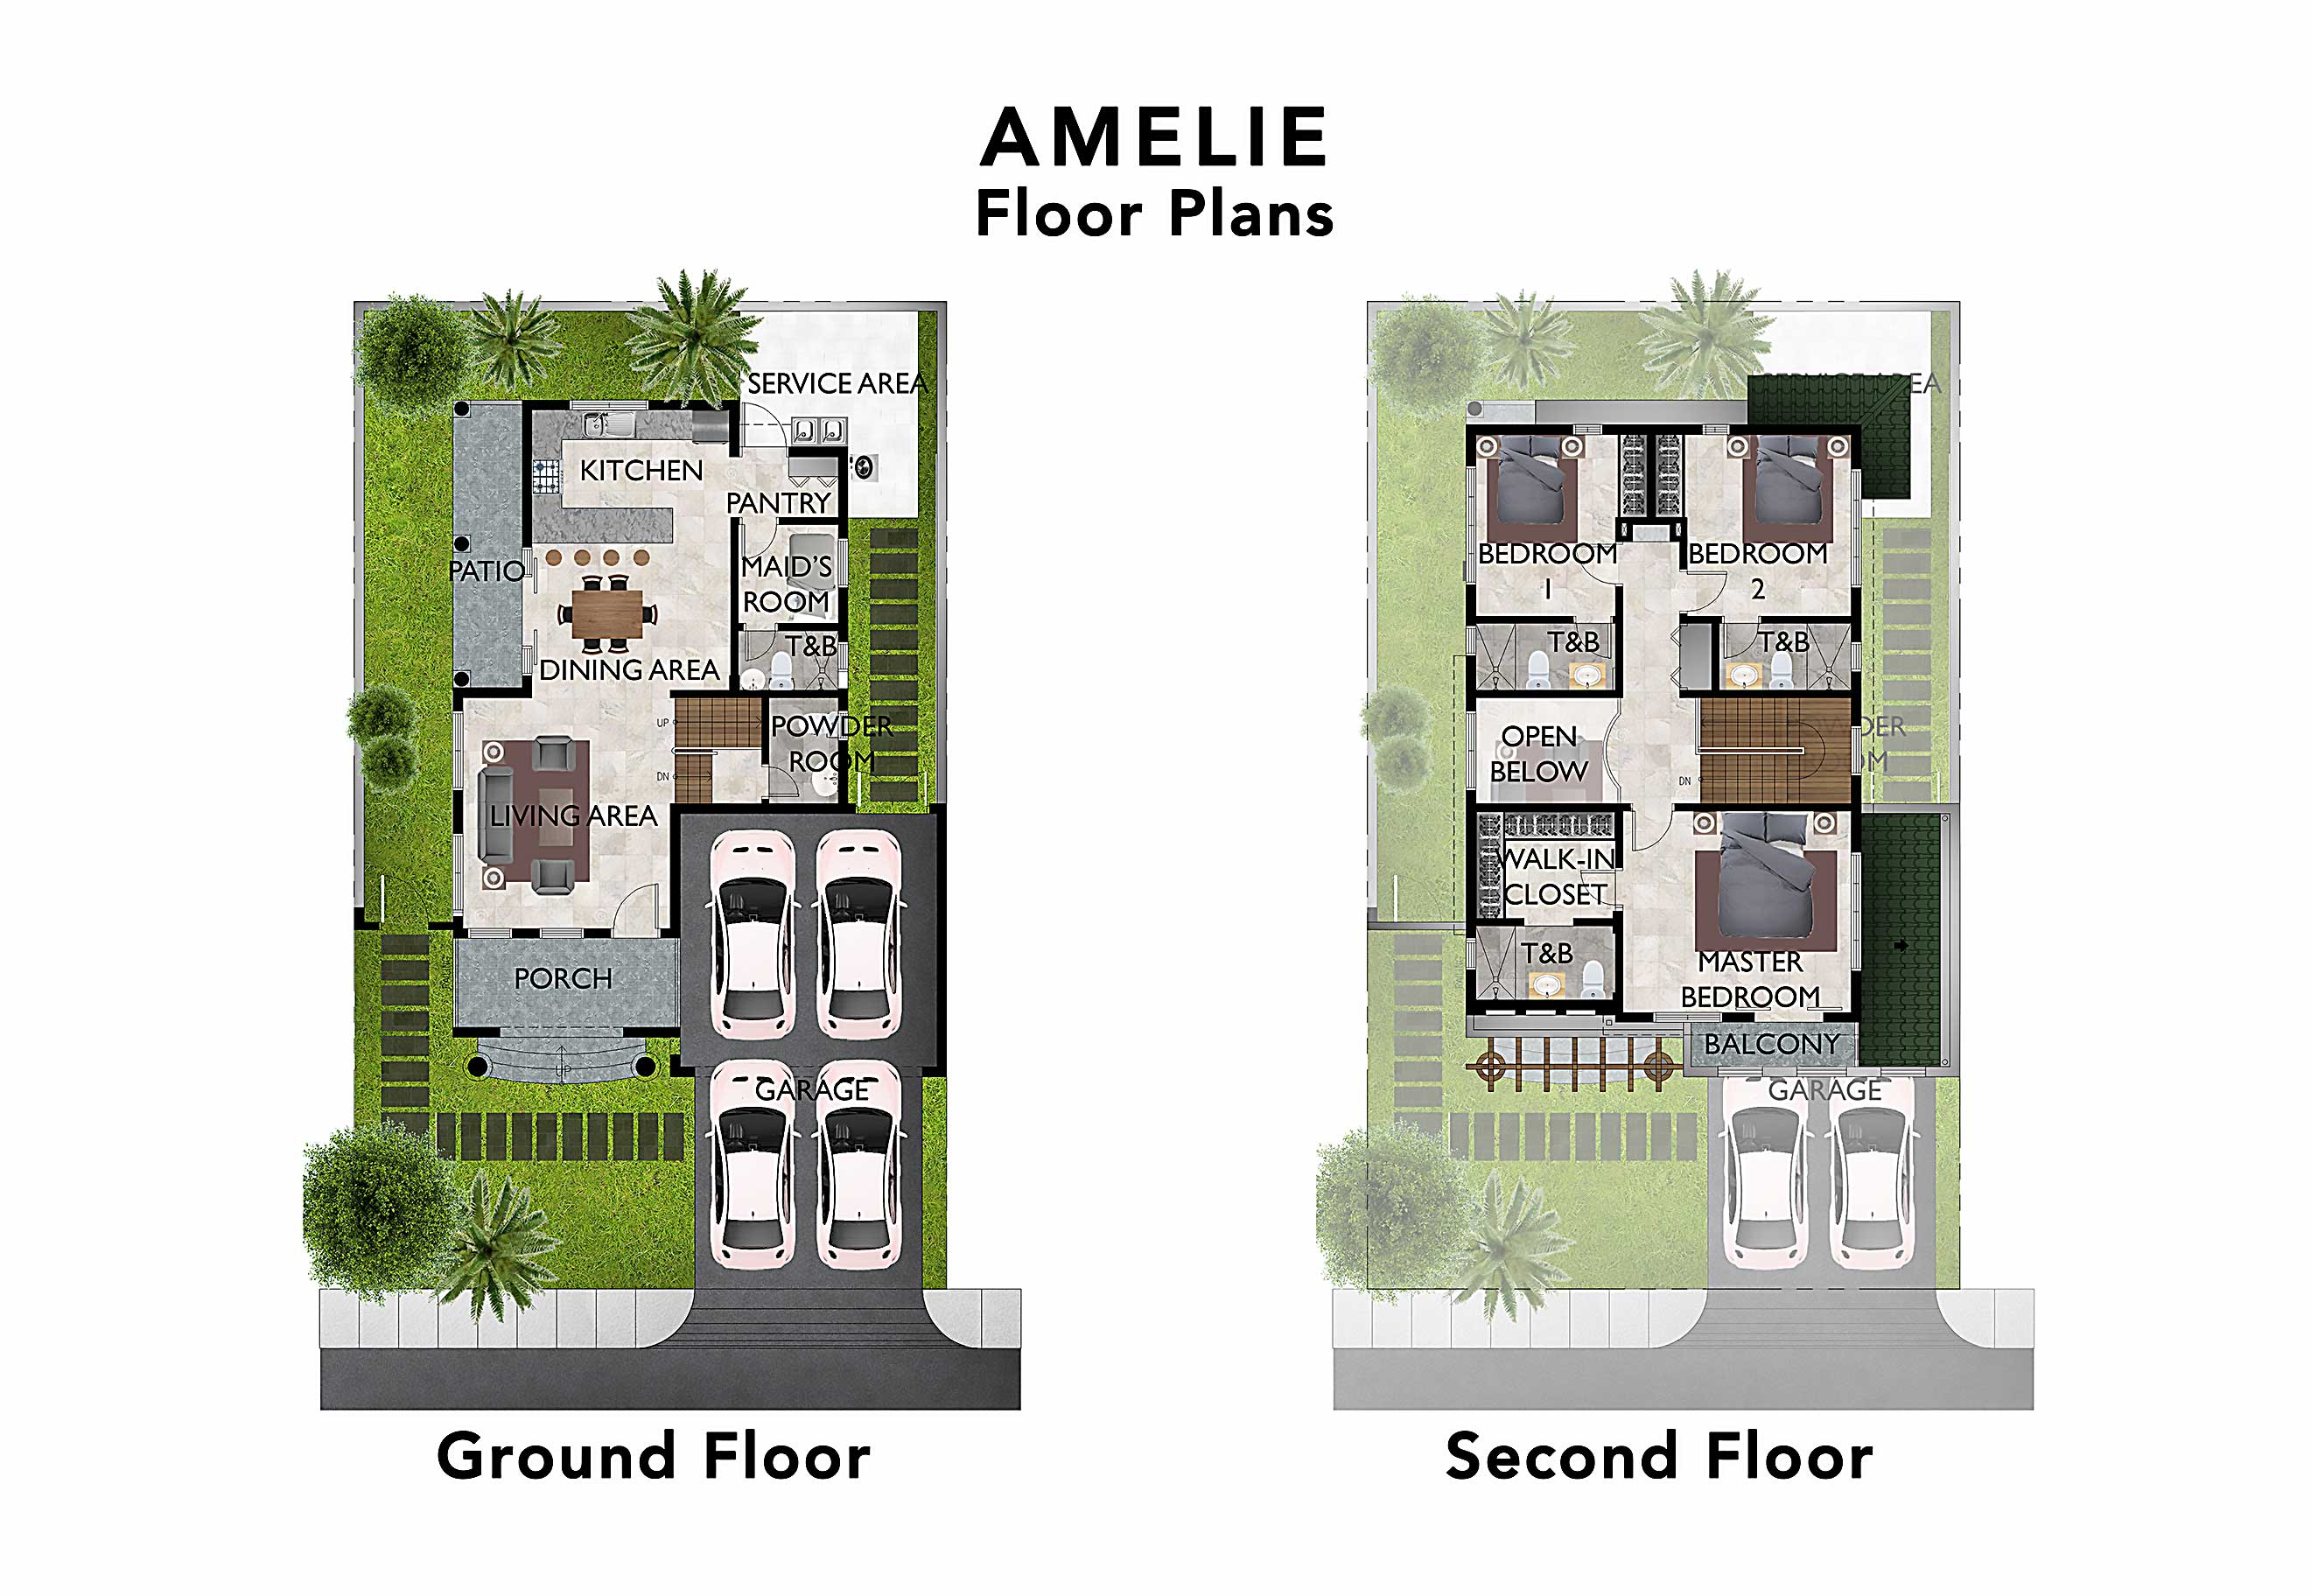 Alabang House for Sale Versailles Amelie Floor Plans UPDATED 20201217 (saved for web)